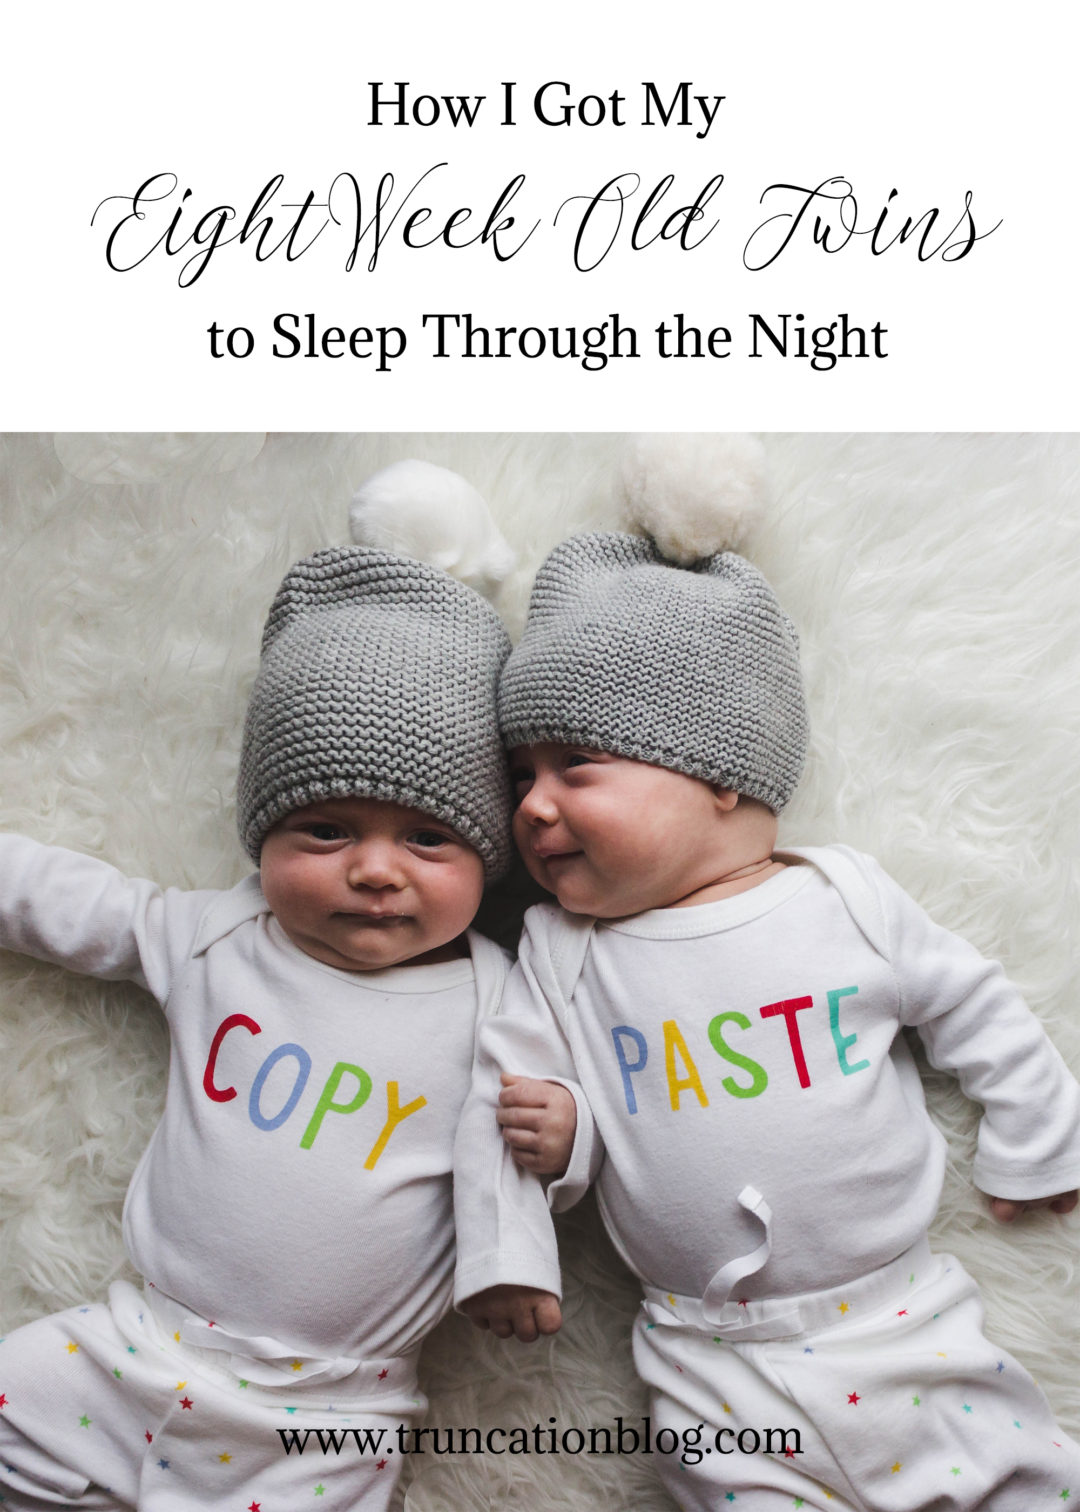 Karin Rambo of truncationblog.com shares how she got her Eight Week Old Twins to Sleep Through the Night